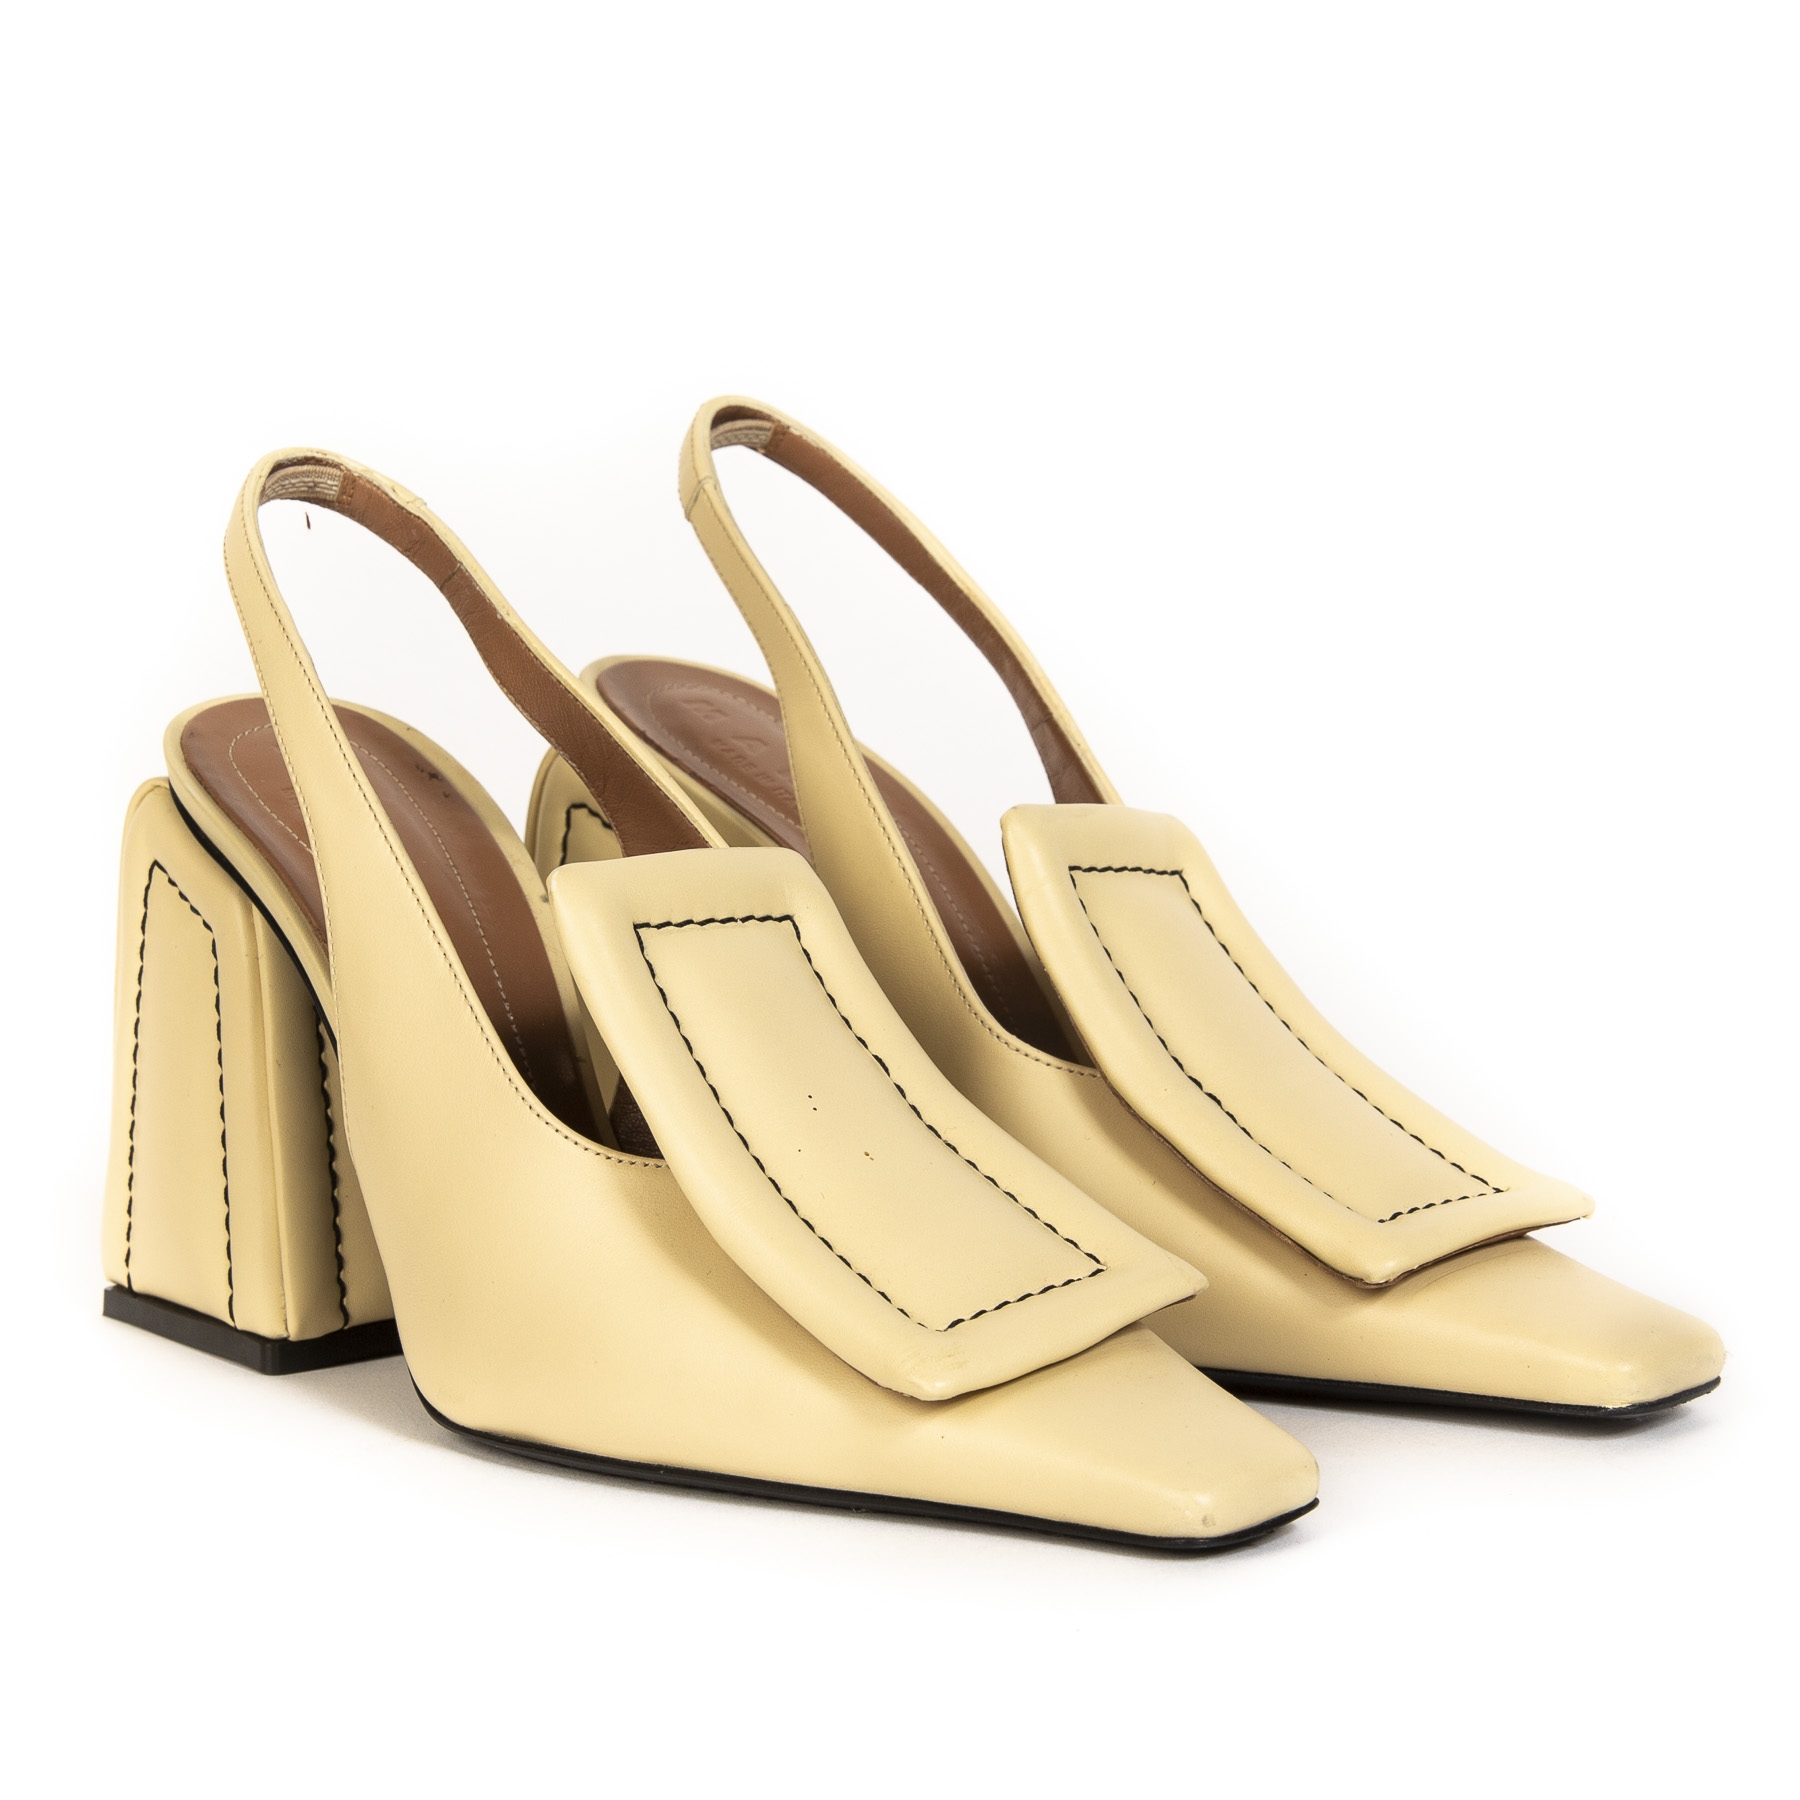 Marni Sling Back Shoe Light Yellow - Size 40